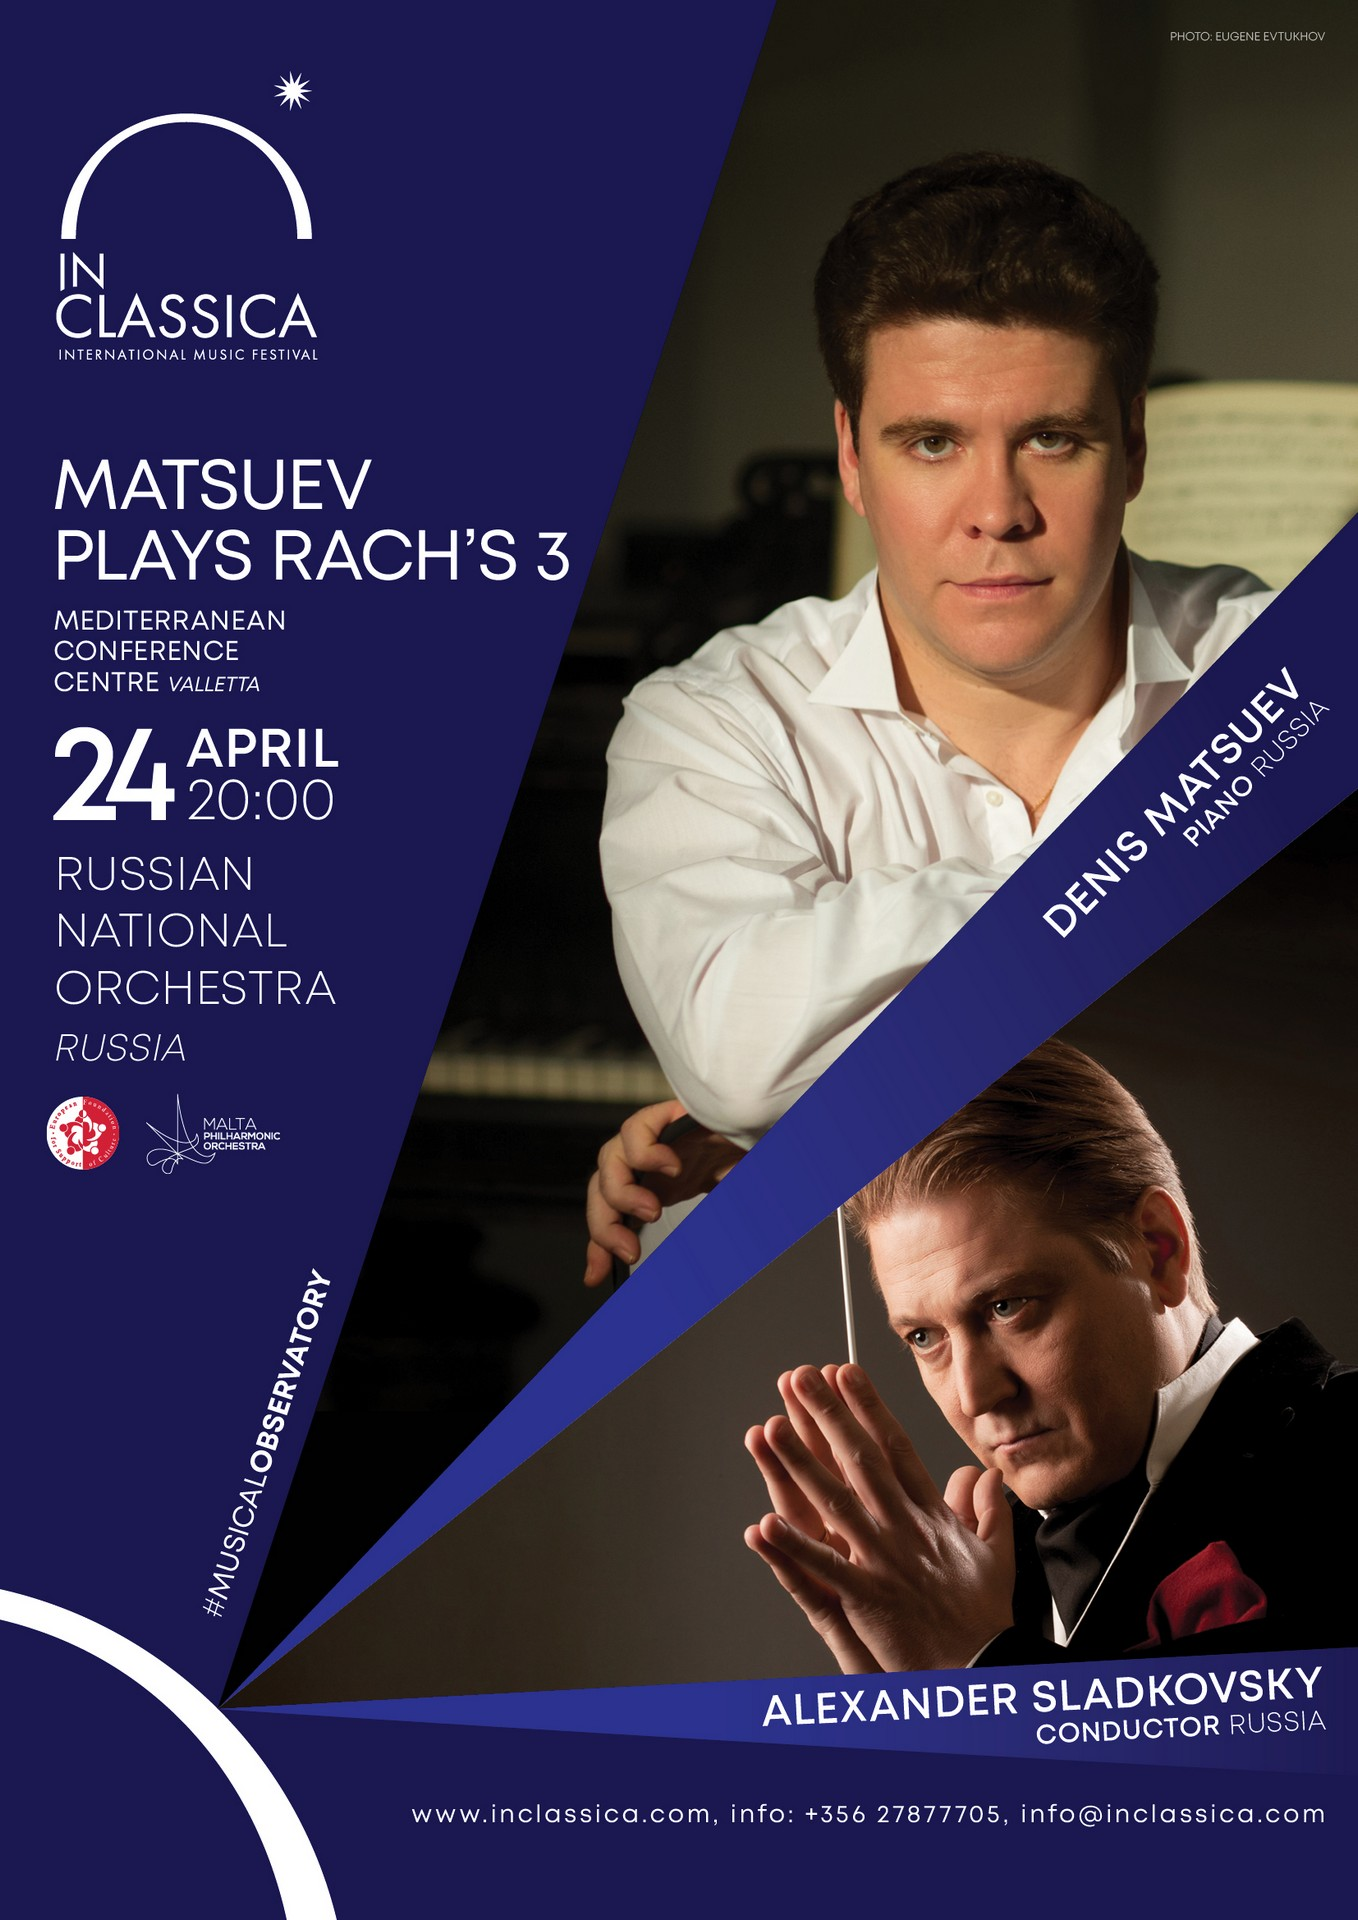 MATSUEV PLAYS RACH'S 3 flyer